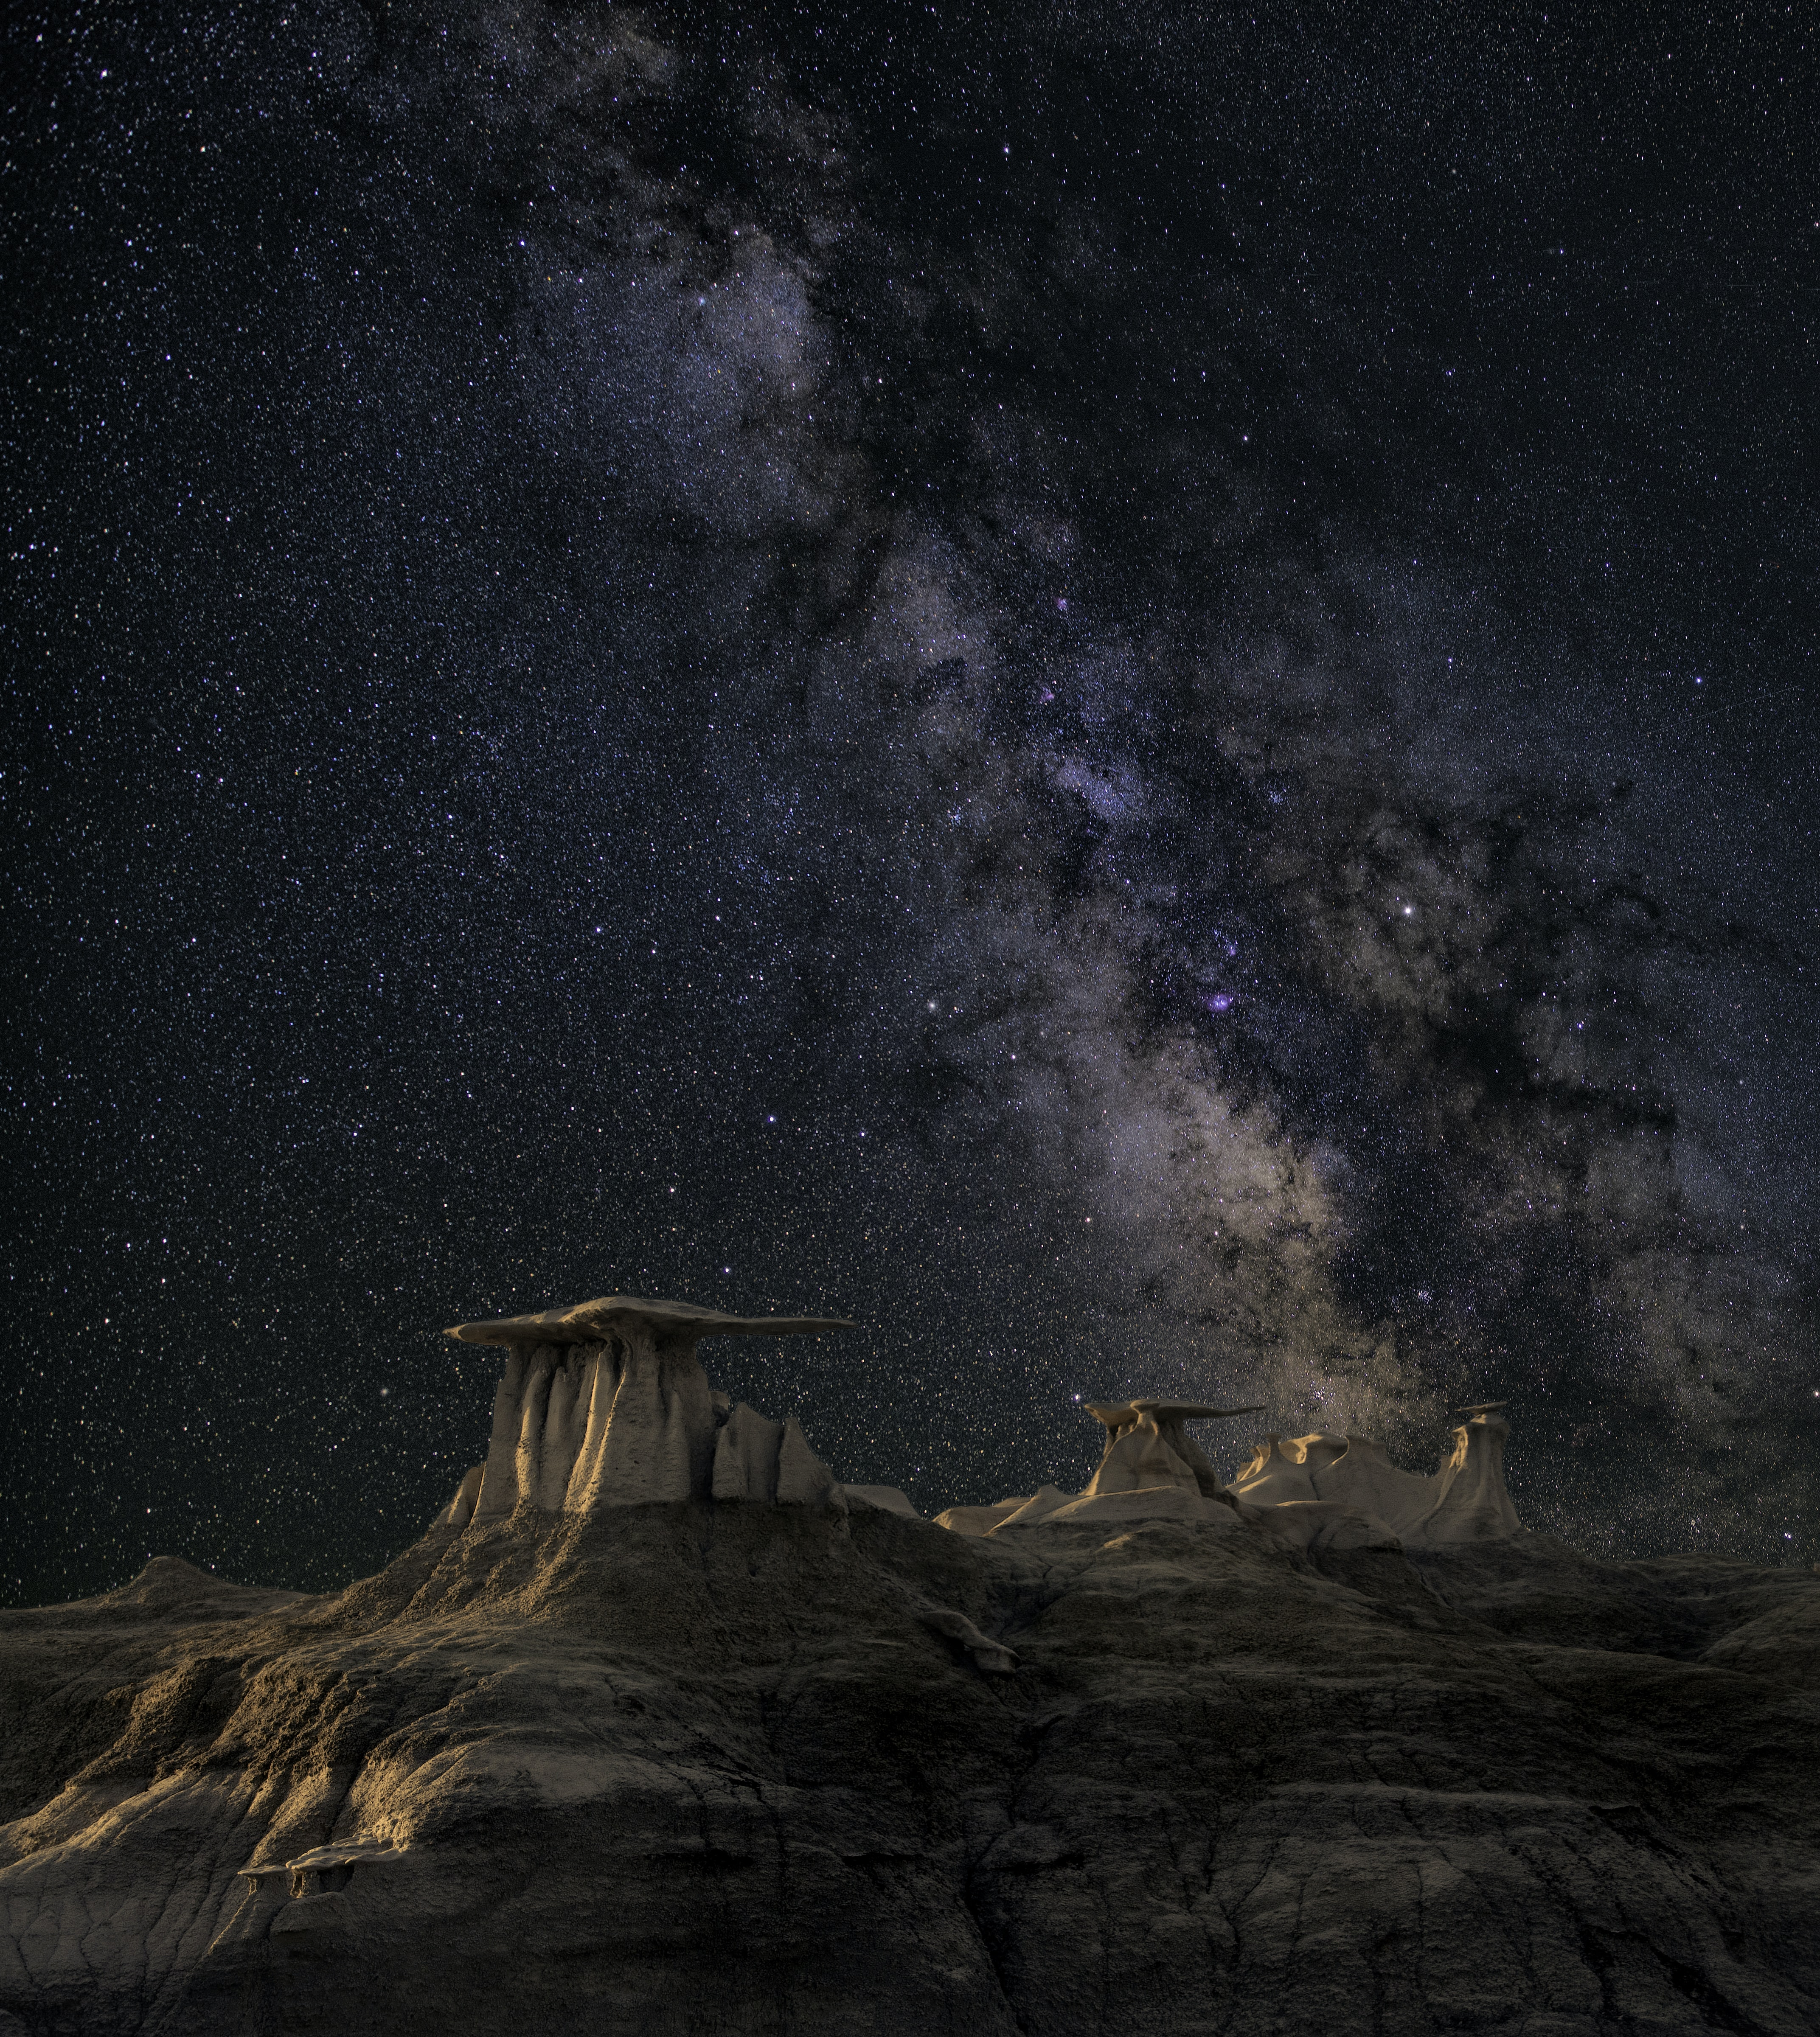 The Milky Way rises above the rock formations against the star-studded night sky.